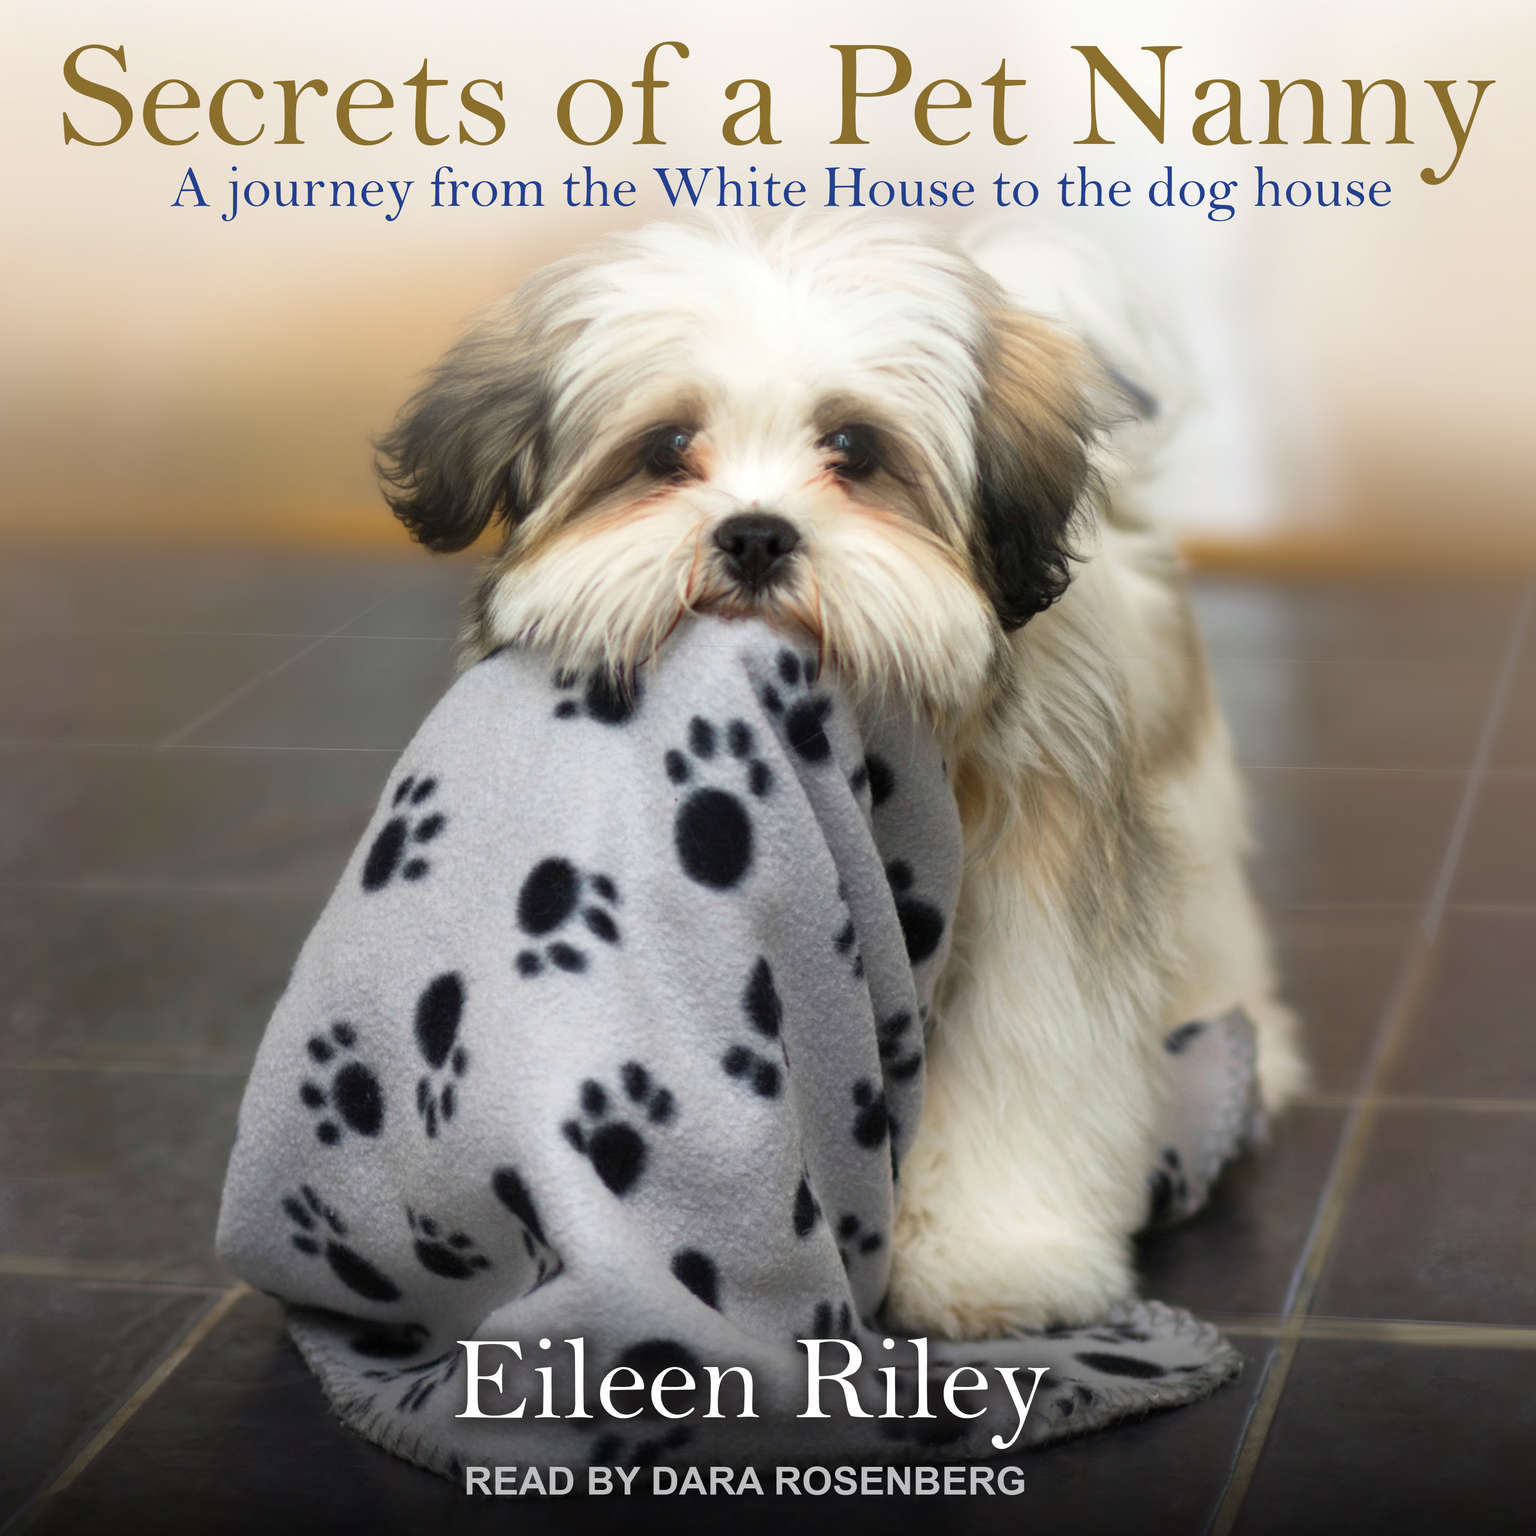 Secrets of a Pet Nanny: A Journey from the White House to the Dog House Audiobook, by Eileen Riley